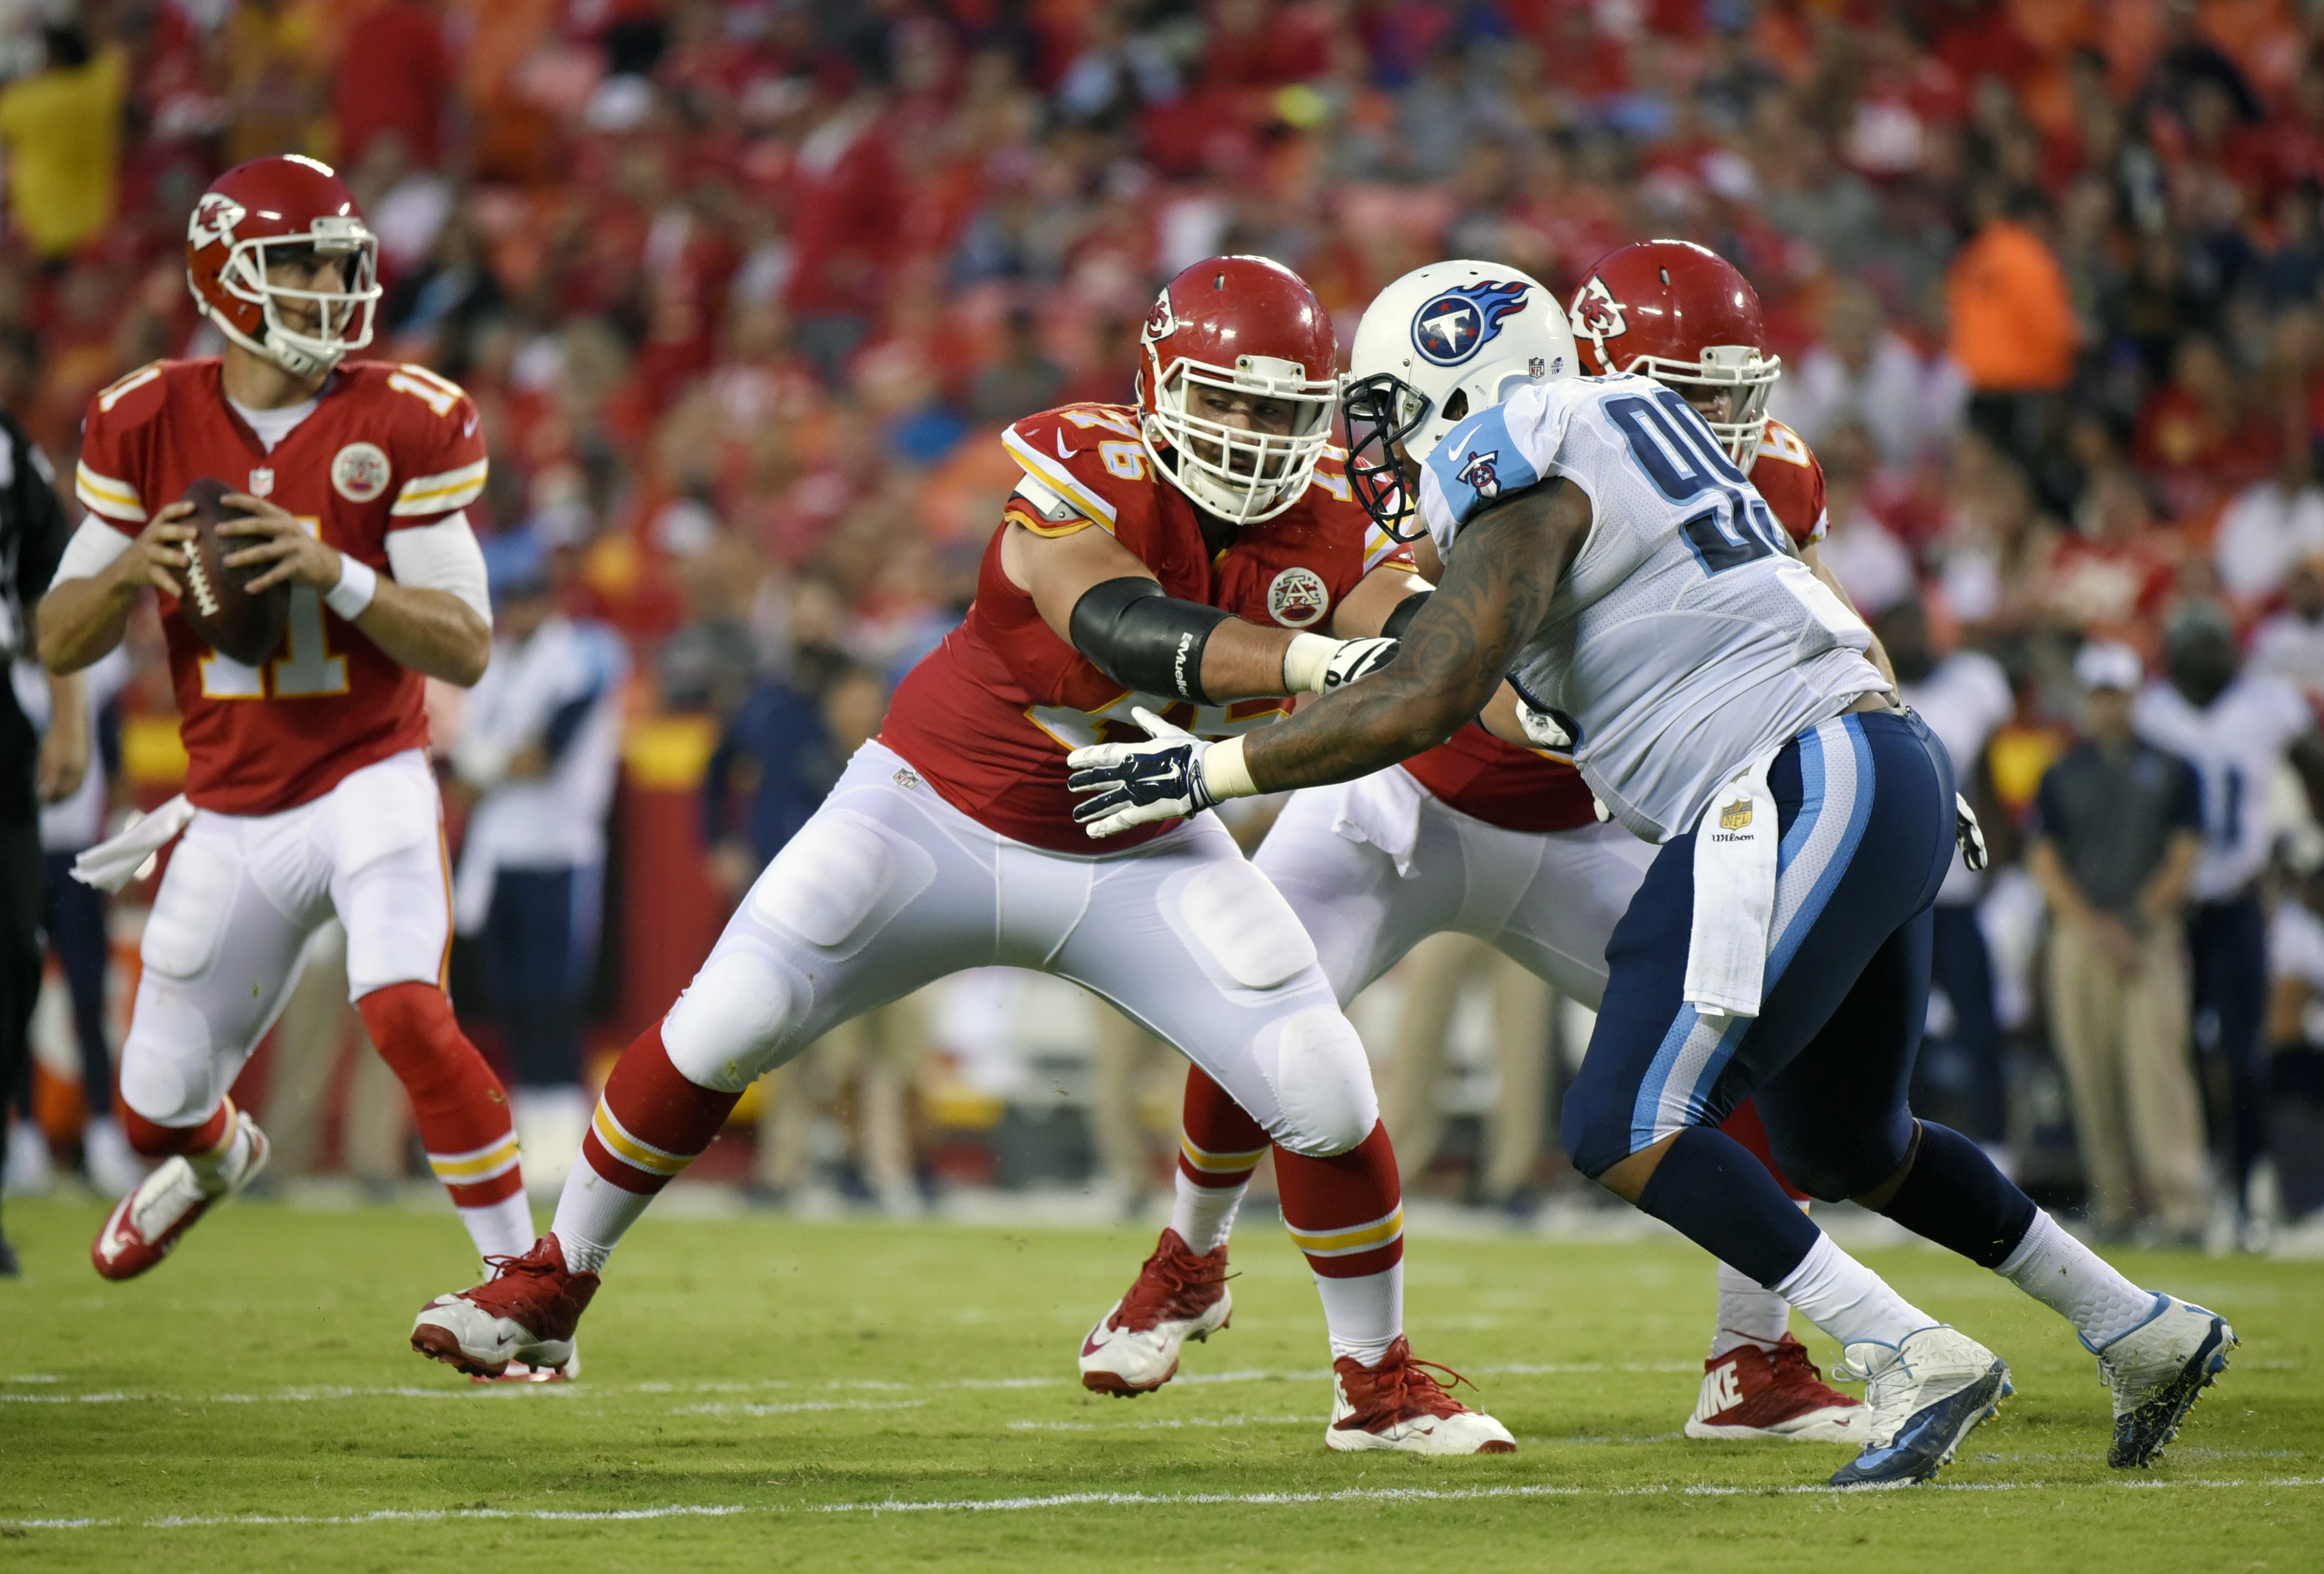 FILE - In this Aug. 28, 2015, file photo, Kansas City Chiefs offensive lineman Laurent Duvernay-Tardif (76), center,  blocks Tennessee Titans defensive tackle Jurrell Casey (99) during the first half of a preseason NFL football game at Arrowhead Stadium i